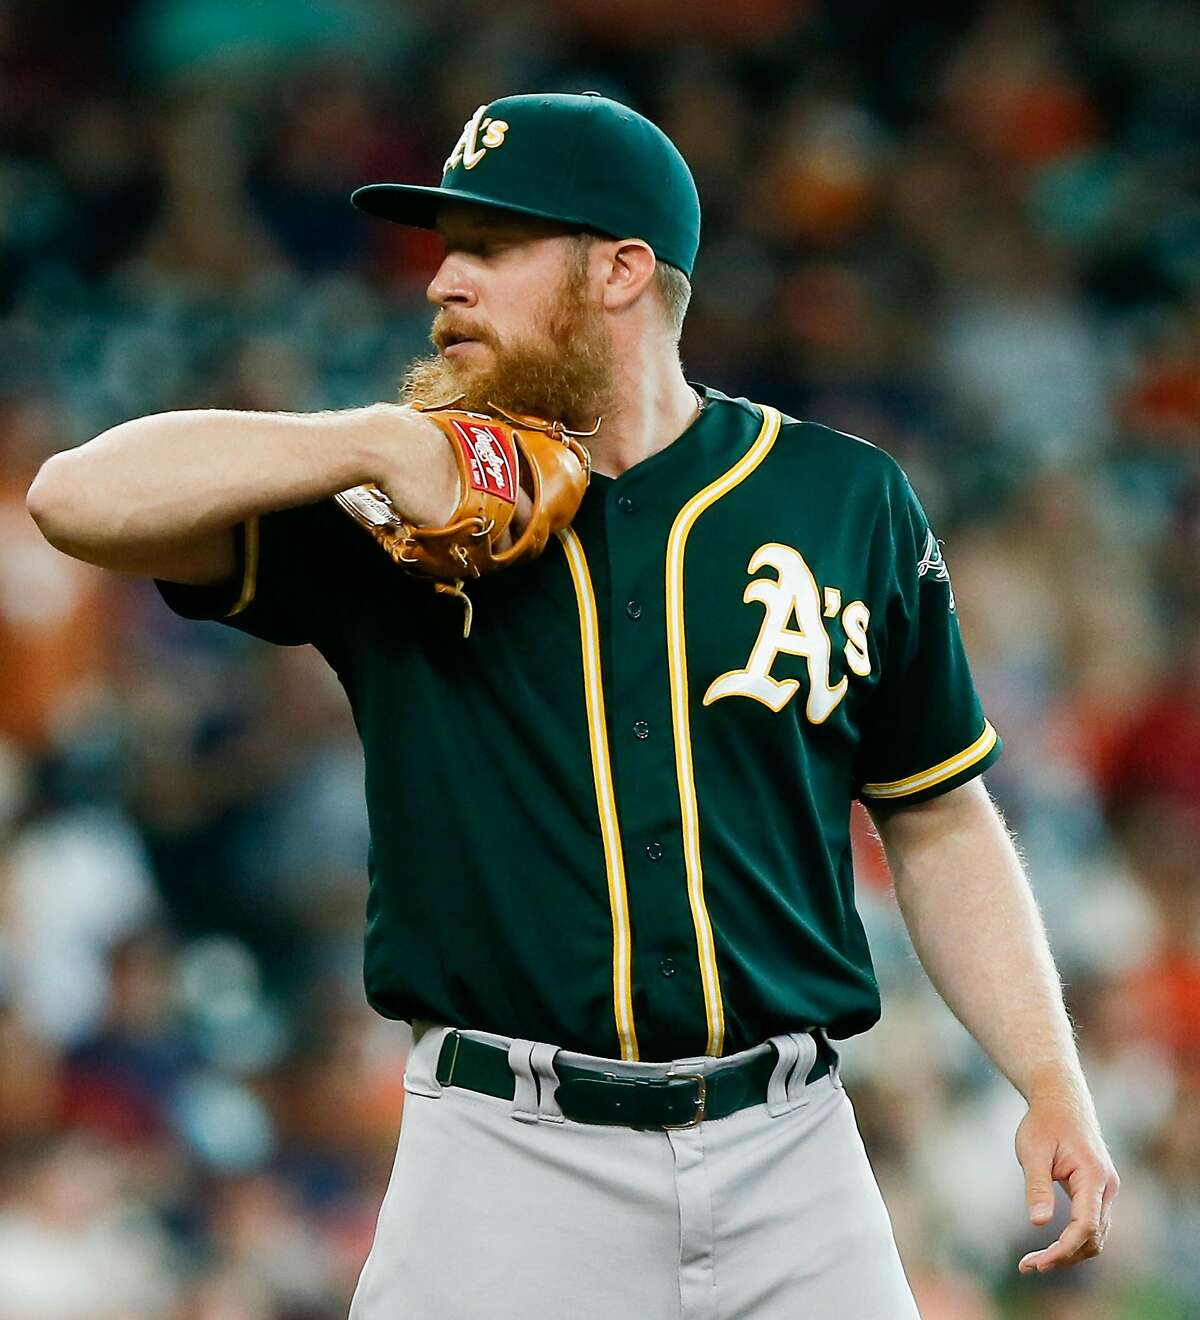 HOUSTON, TX - JUNE 05: Sean Doolittle #62 of the Oakland Athletics looks in before his delivery in the seventh inning against the Houston Astros at Minute Maid Park on June 5, 2016 in Houston, Texas. (Photo by Bob Levey/Getty Images)